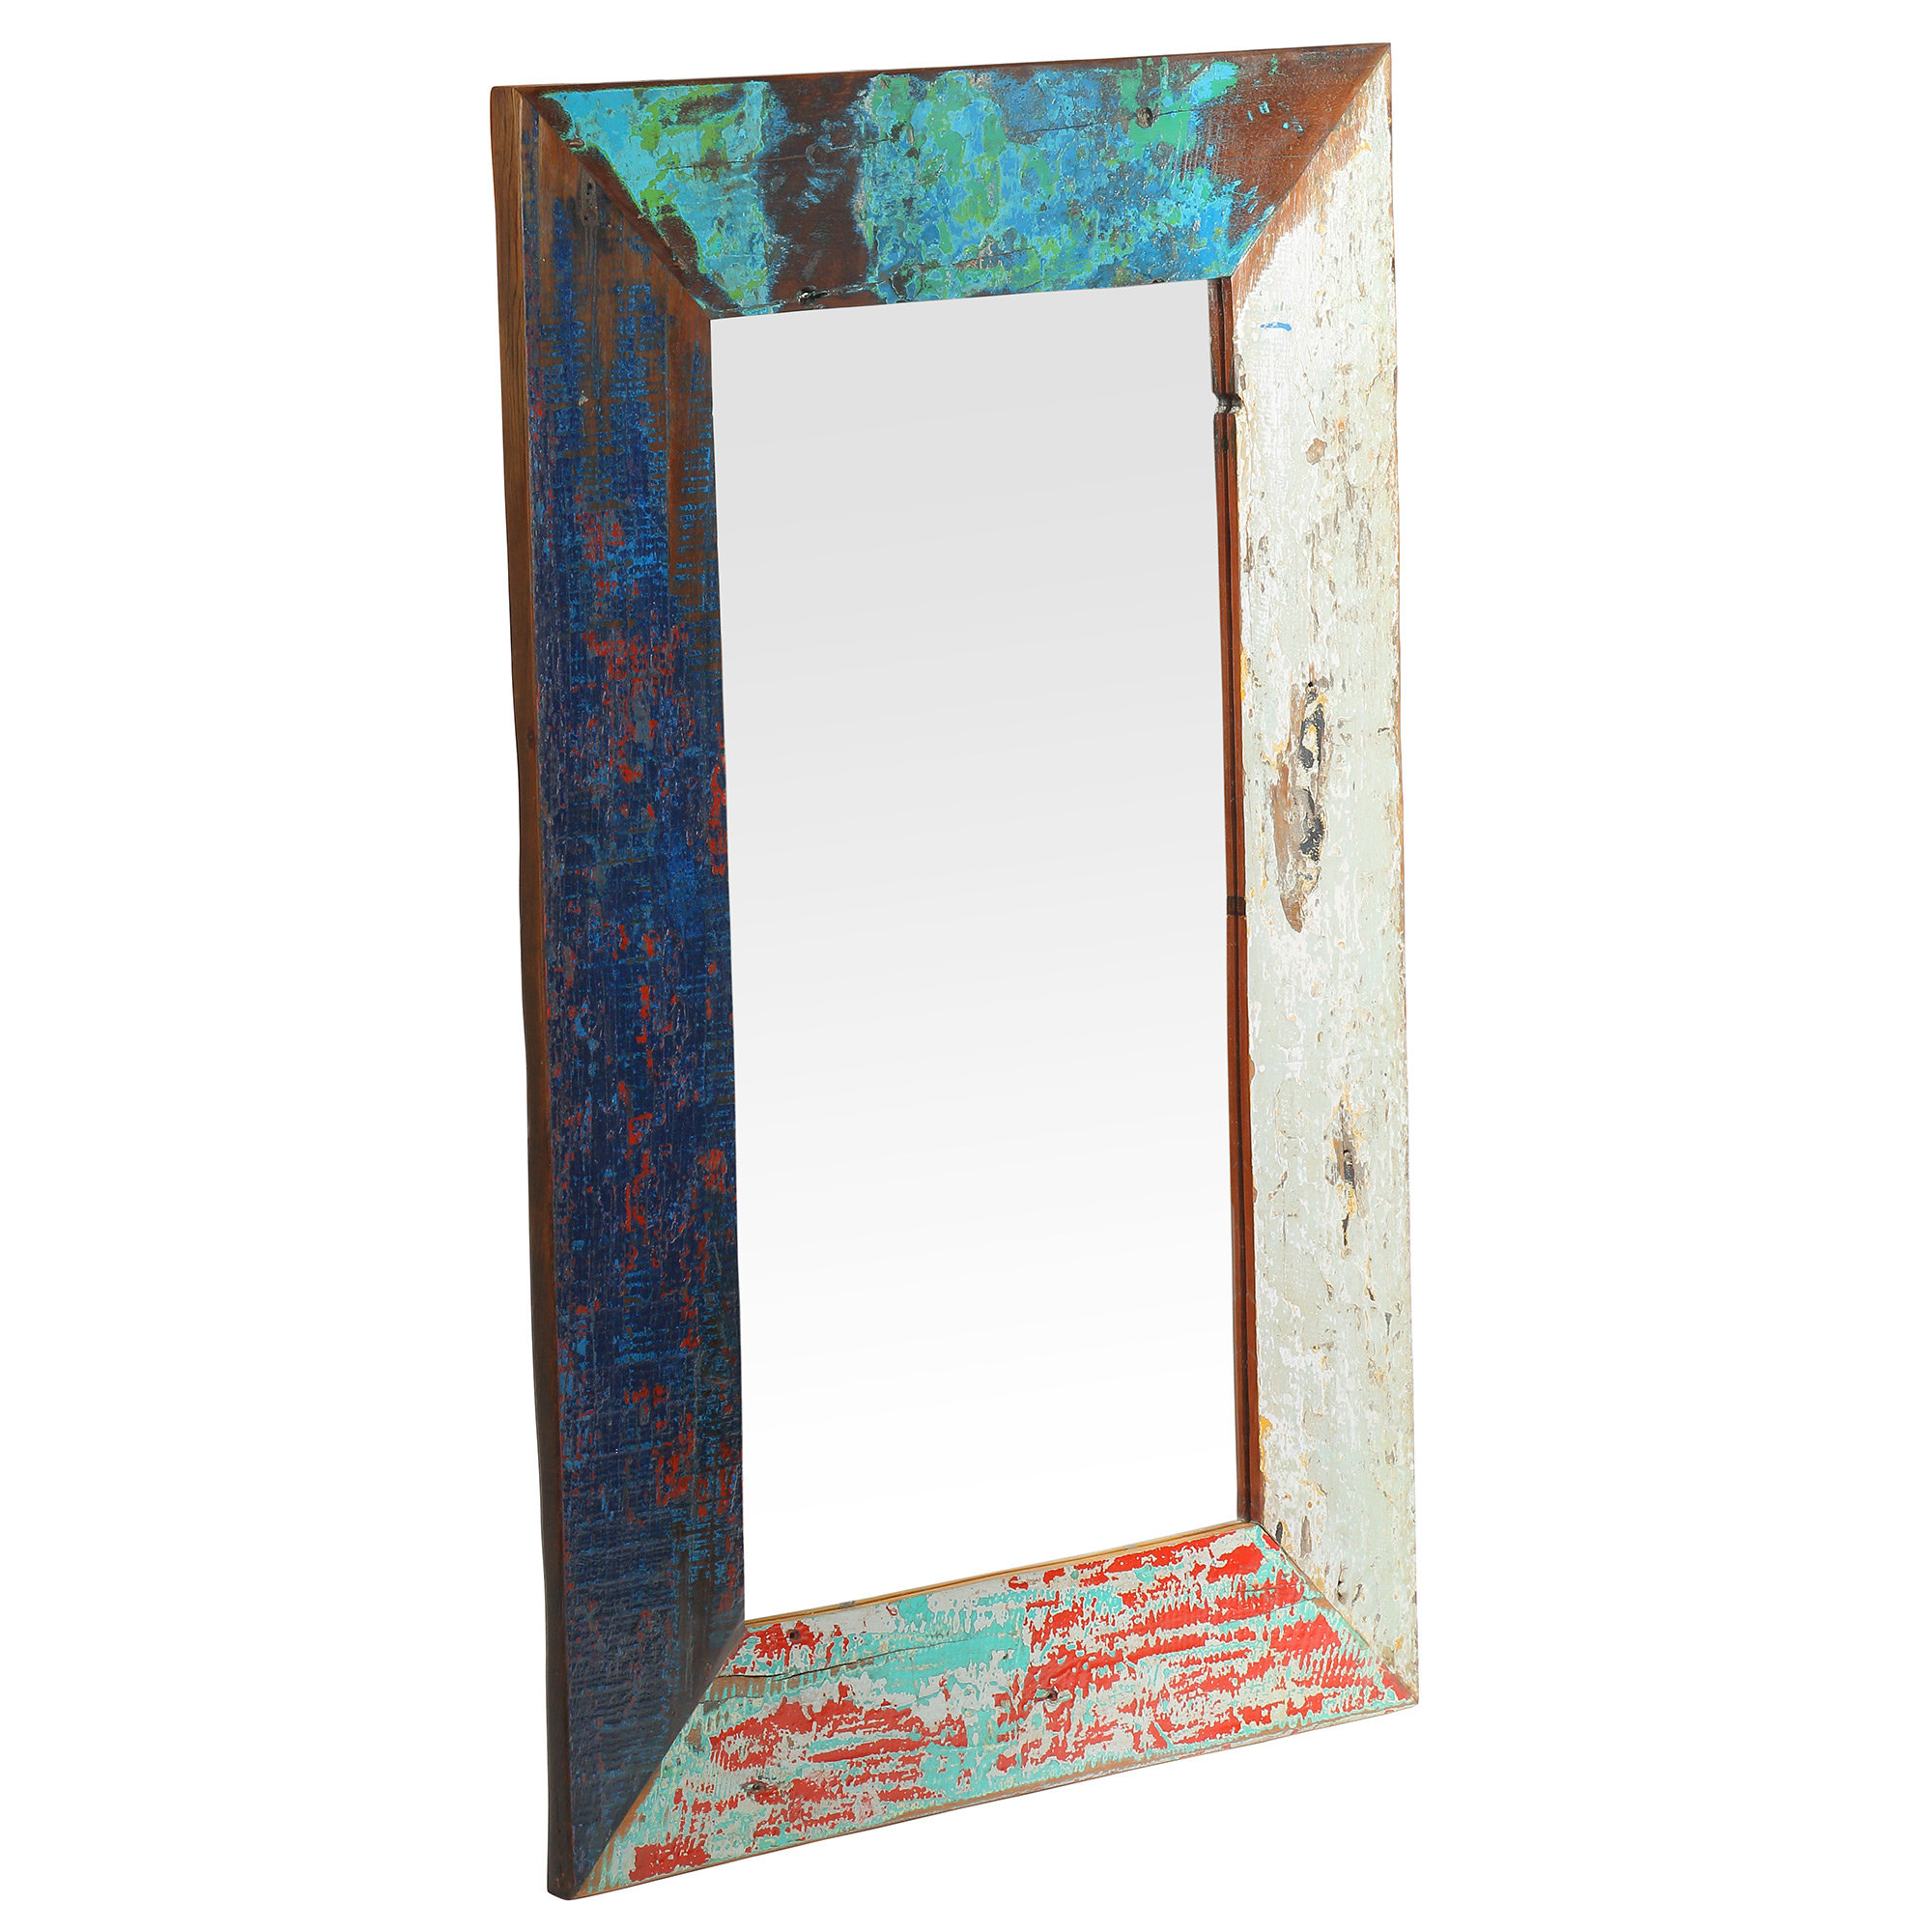 2019 Vintage Accent Mirror With Regard To Arrigo Accent Mirrors (View 1 of 20)